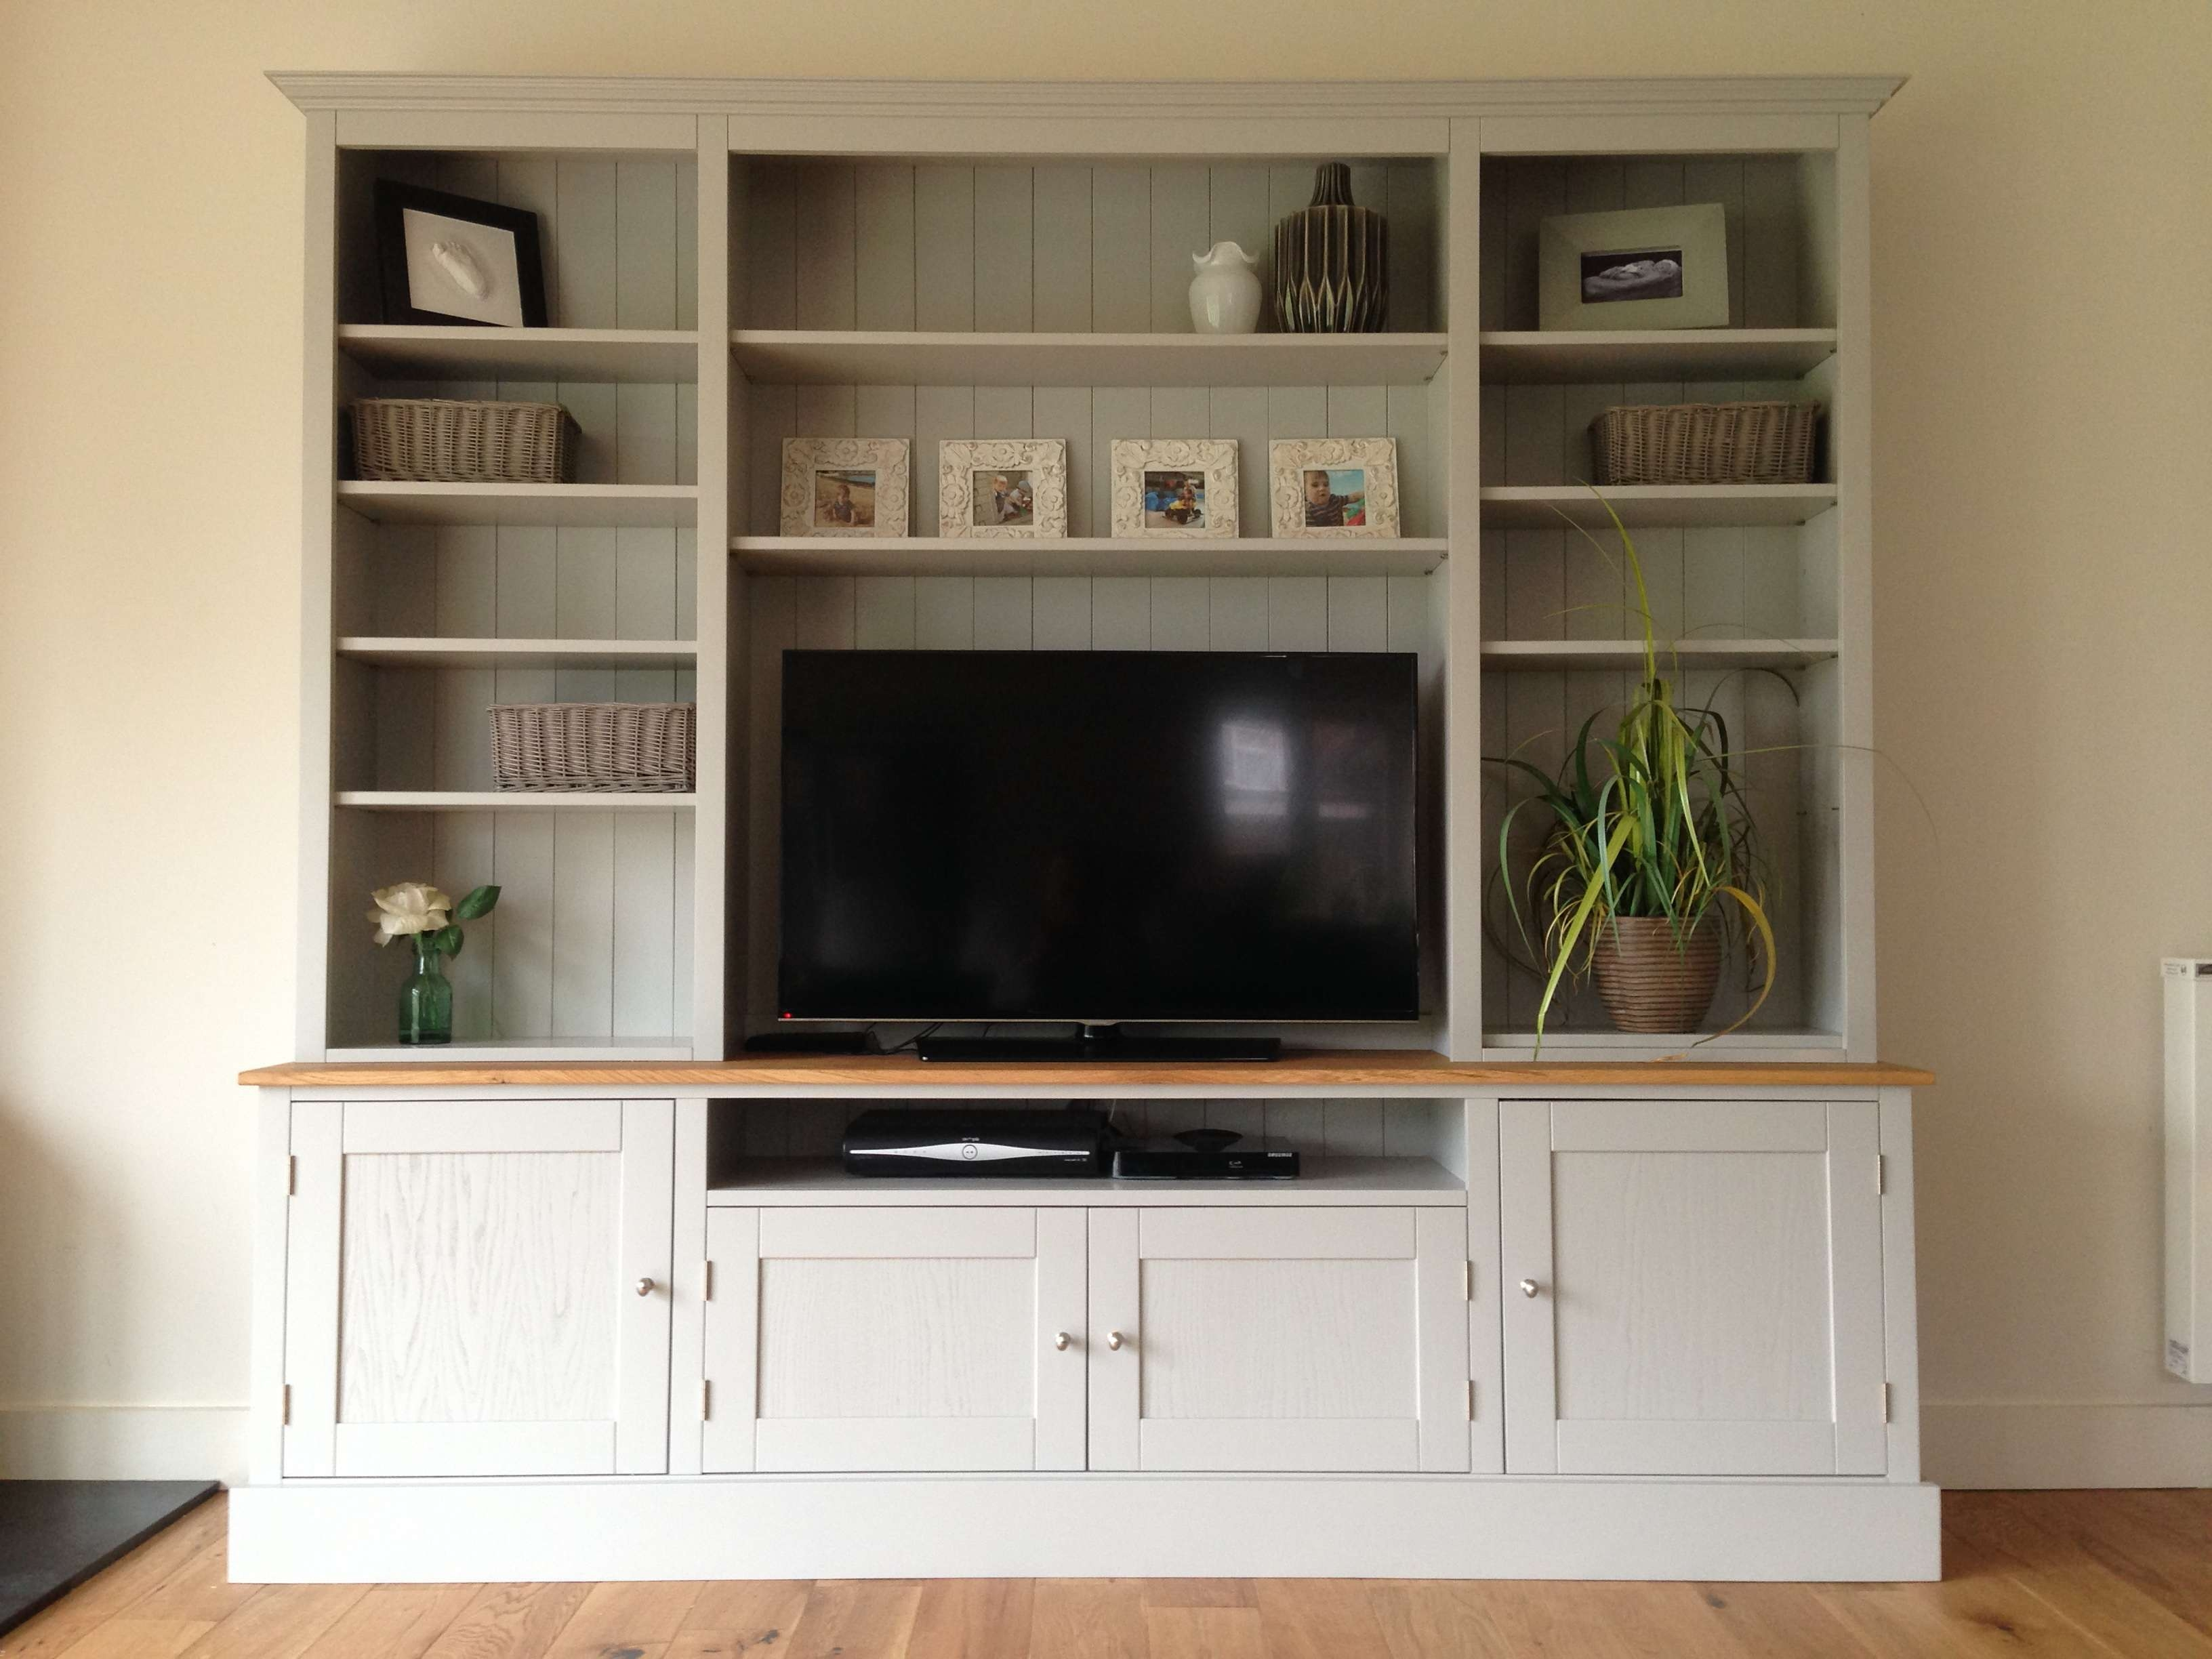 Georgeous 7ft Painted Tv Unit / Dresser – Nest At Number 20 Inside Painted Tv Stands (View 14 of 15)